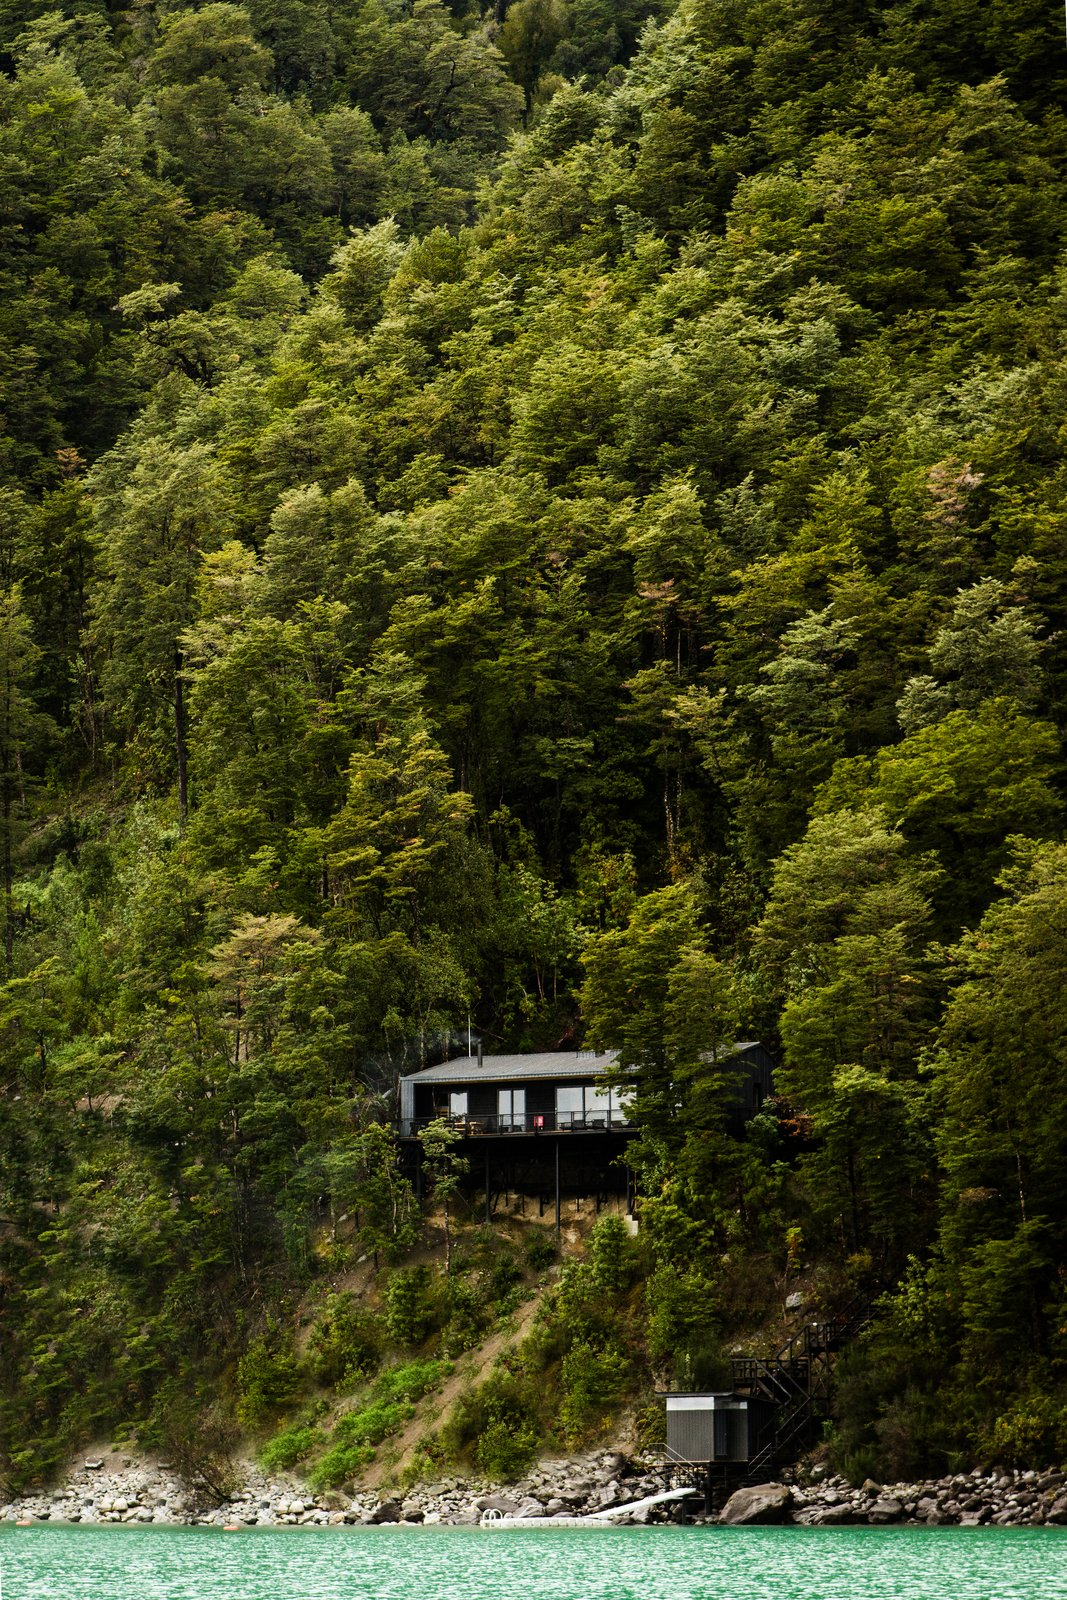 Photo 2 of 9 in Just Getting to This Remote Patagonian Retreat Is an Adventure